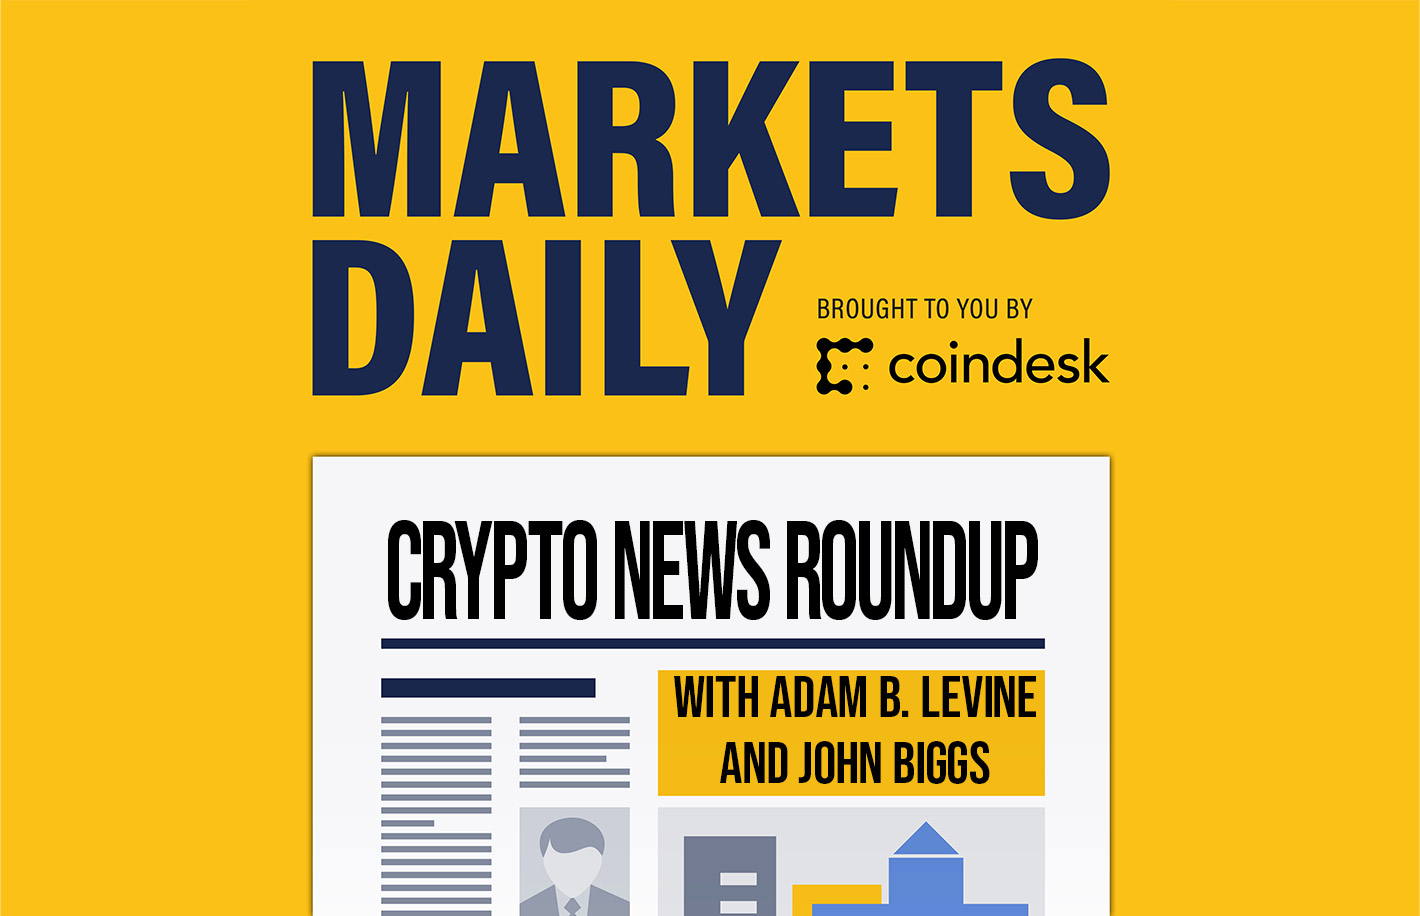 Bitcoin News Roundup for Feb. 14, 2020